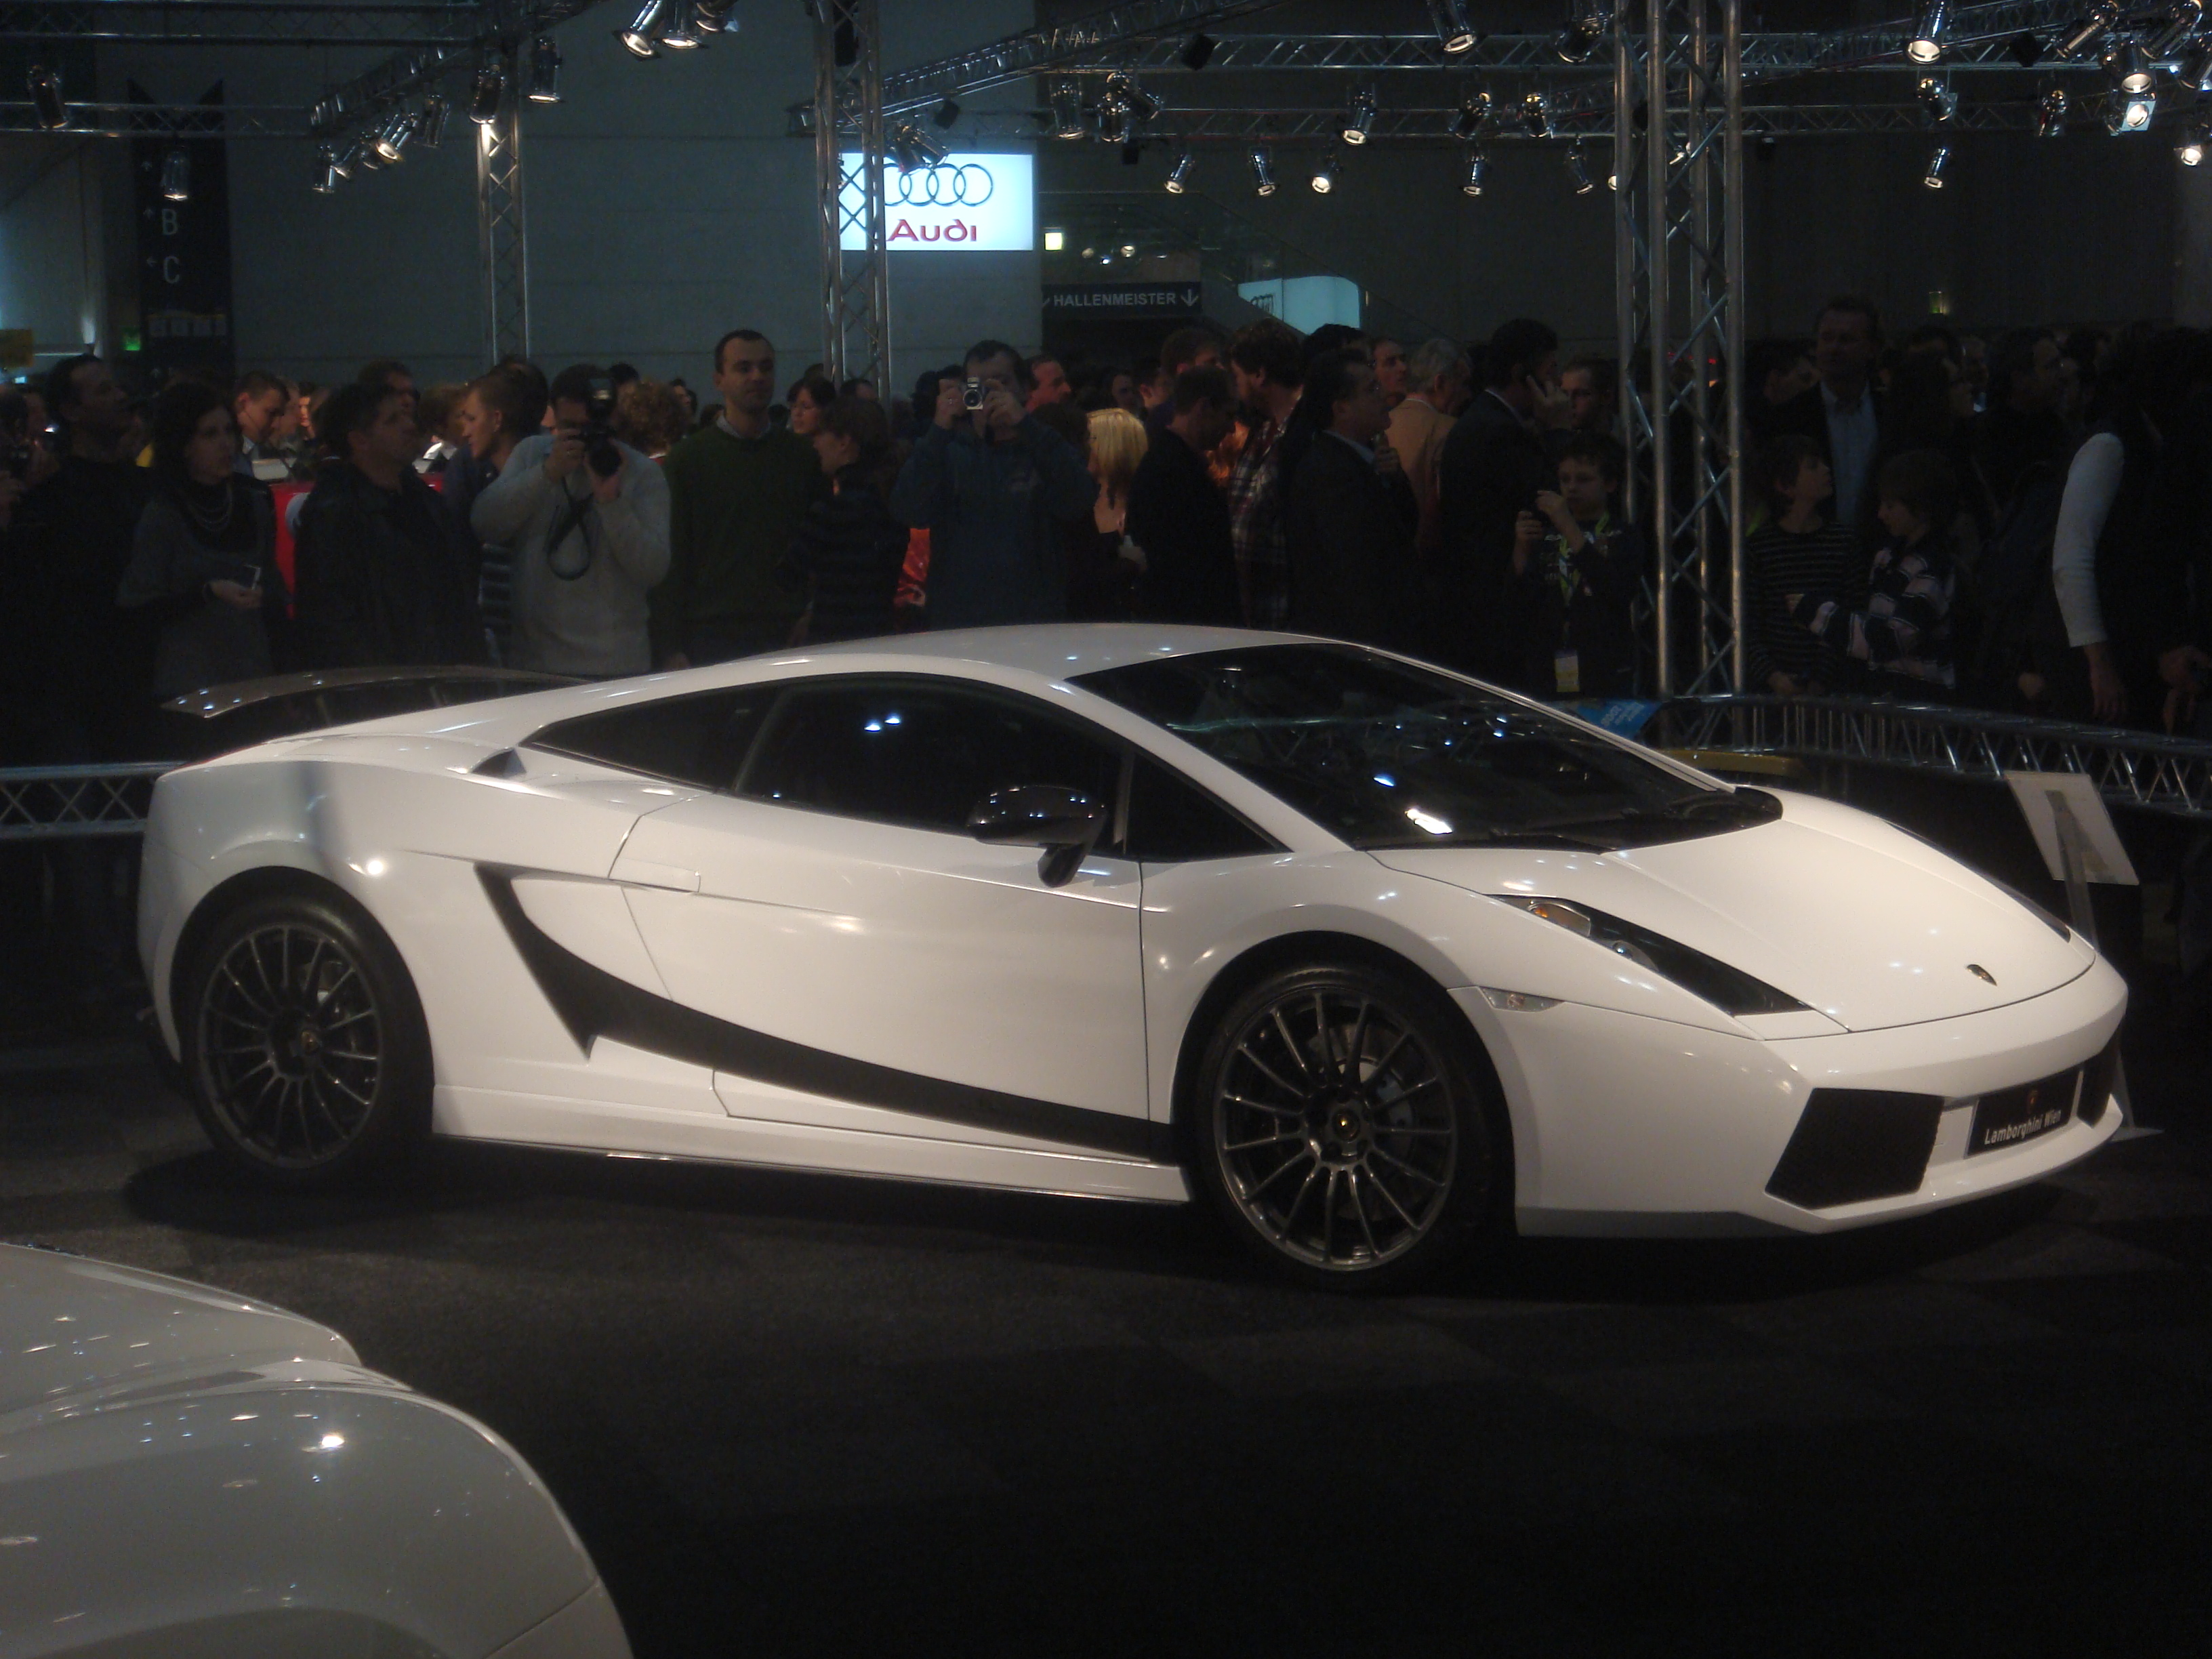 File:Lamborghini Gallardo Superleggera white.jpg - Wikipedia